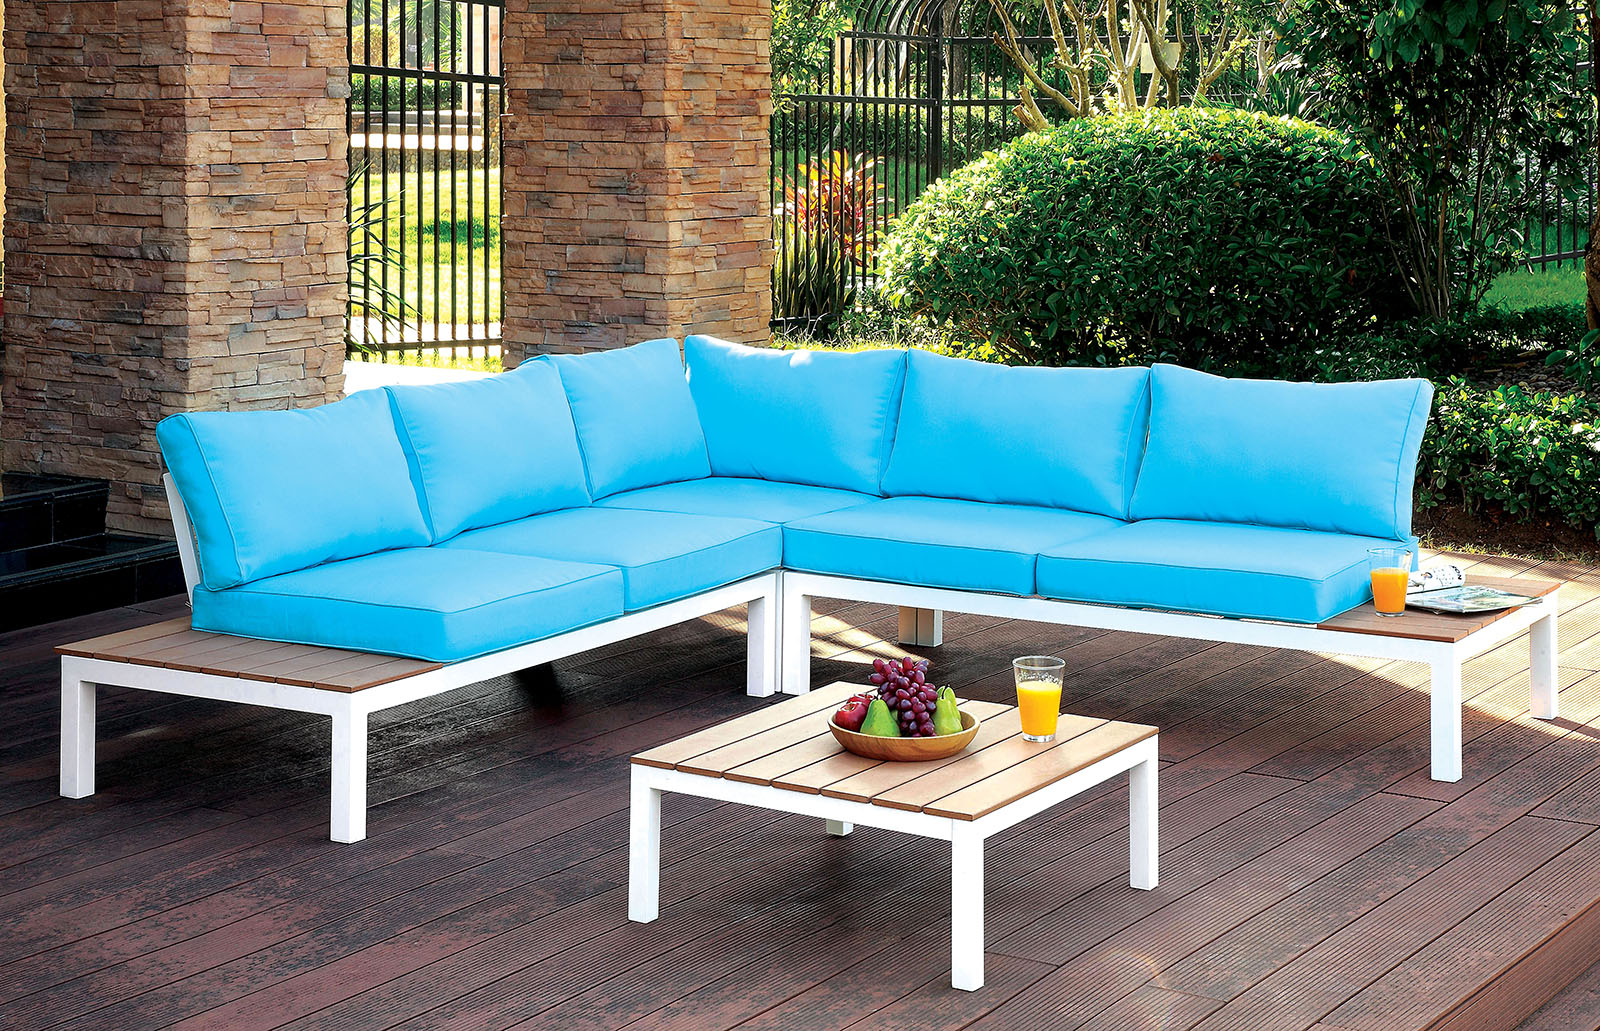 Winona patio set by furniture of america cm os2580 for Furniture of america dallas texas